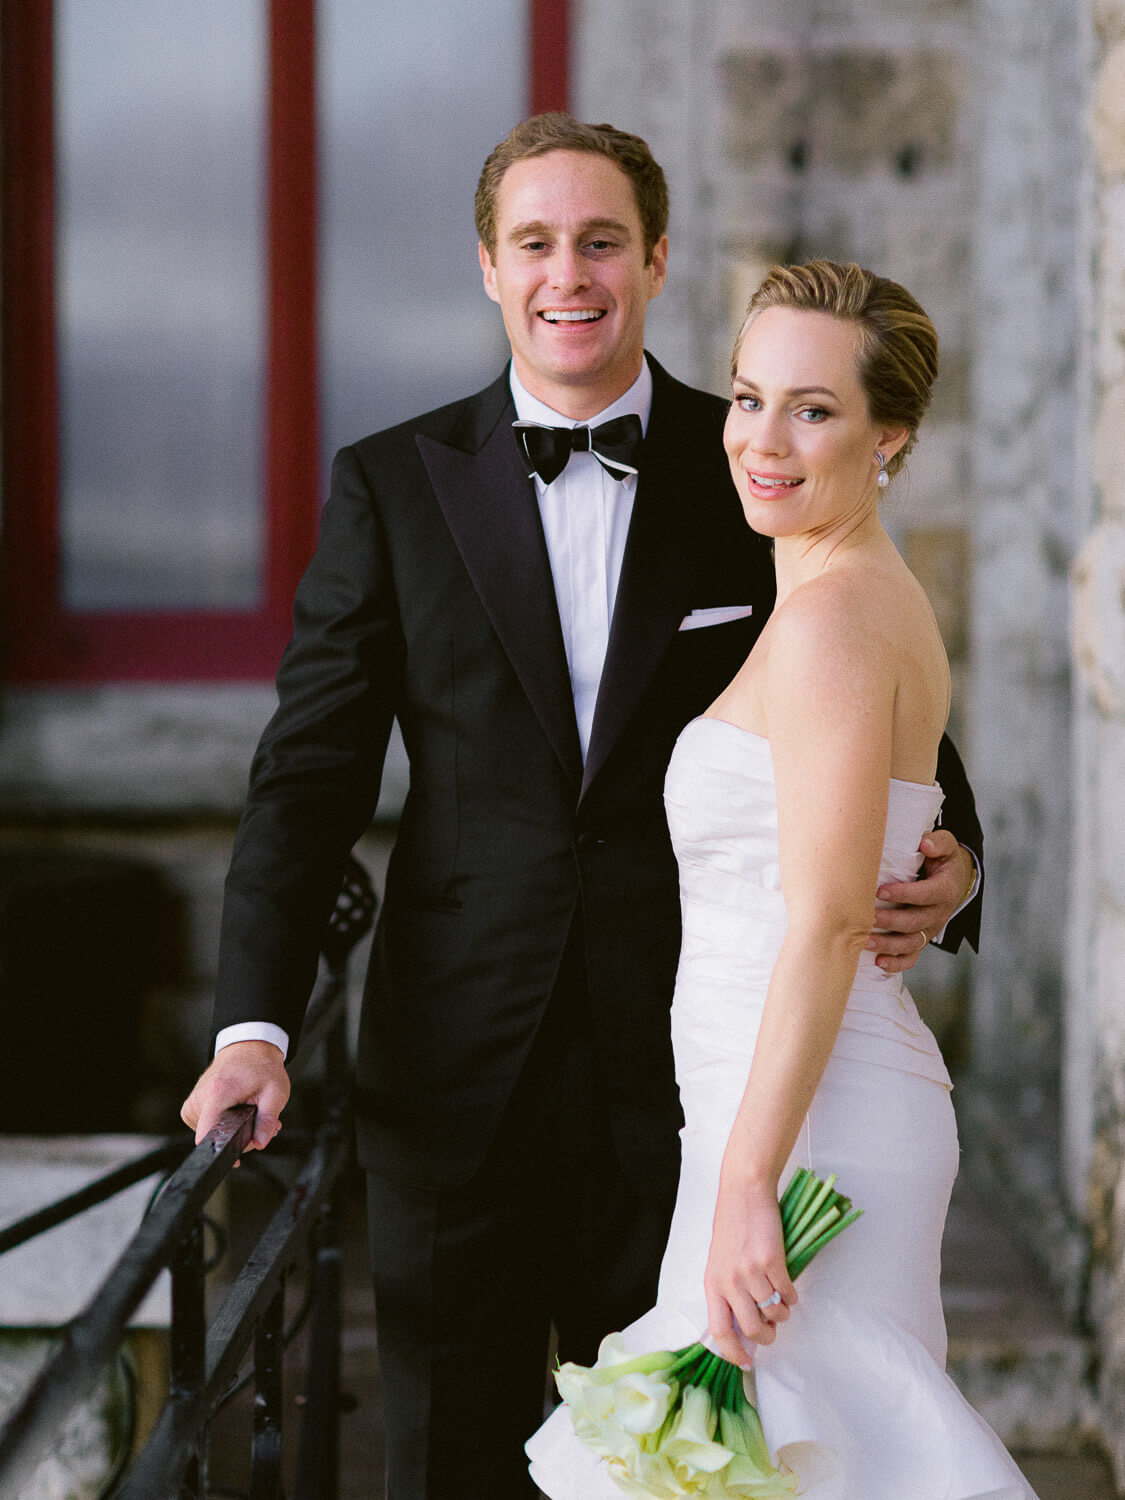 newlyweds lively portrait by Portugal Wedding Photographer